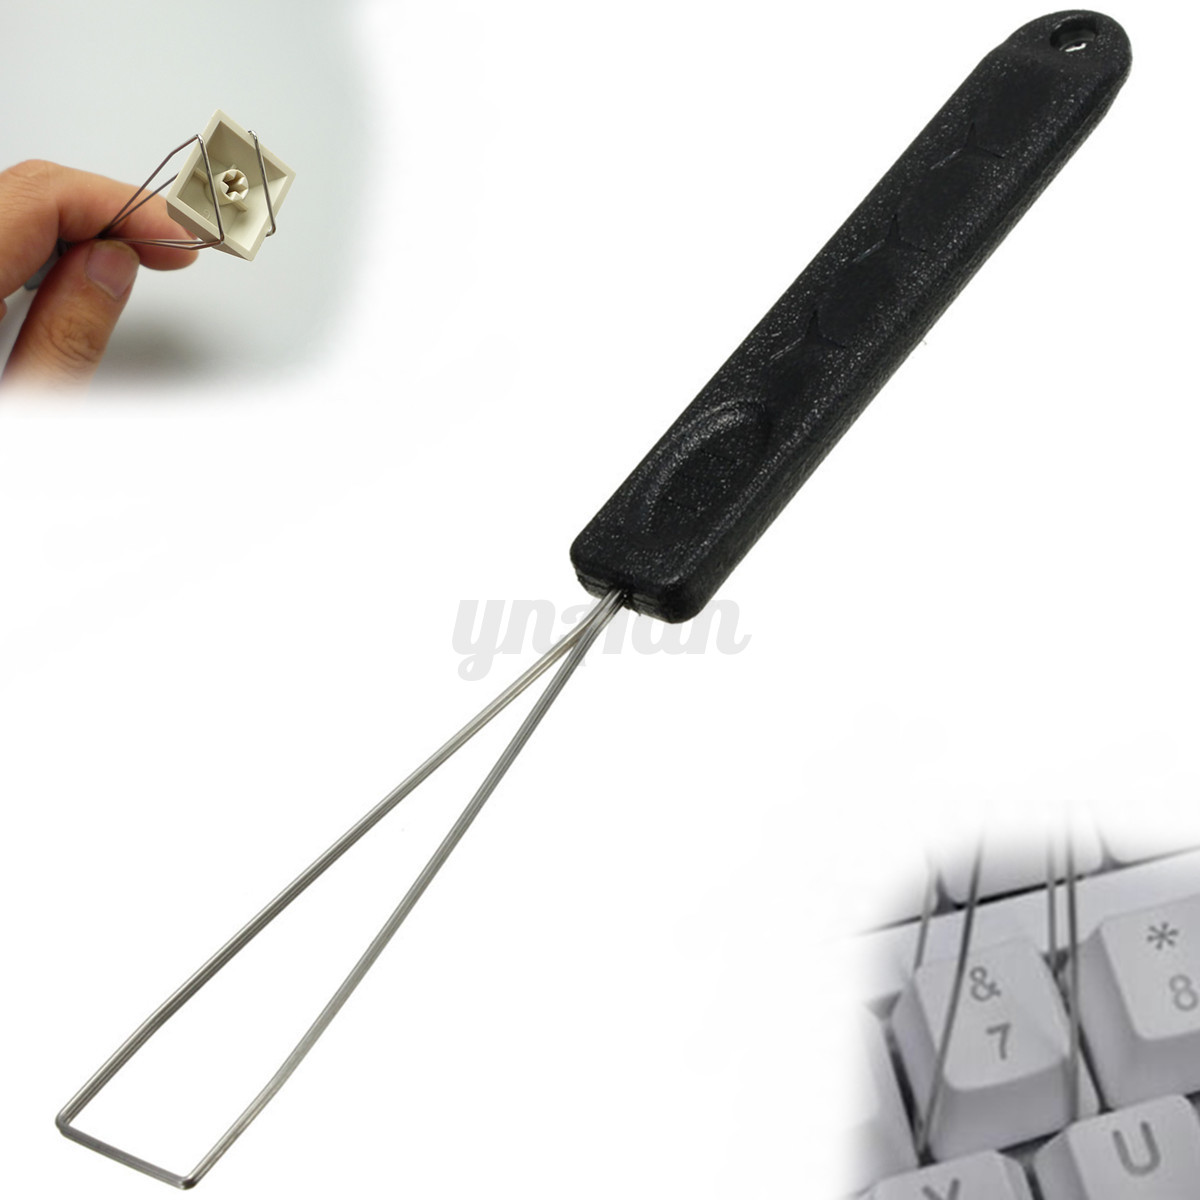 Mechanical Keyboard Keycap Puller Remover For Cherry Mx